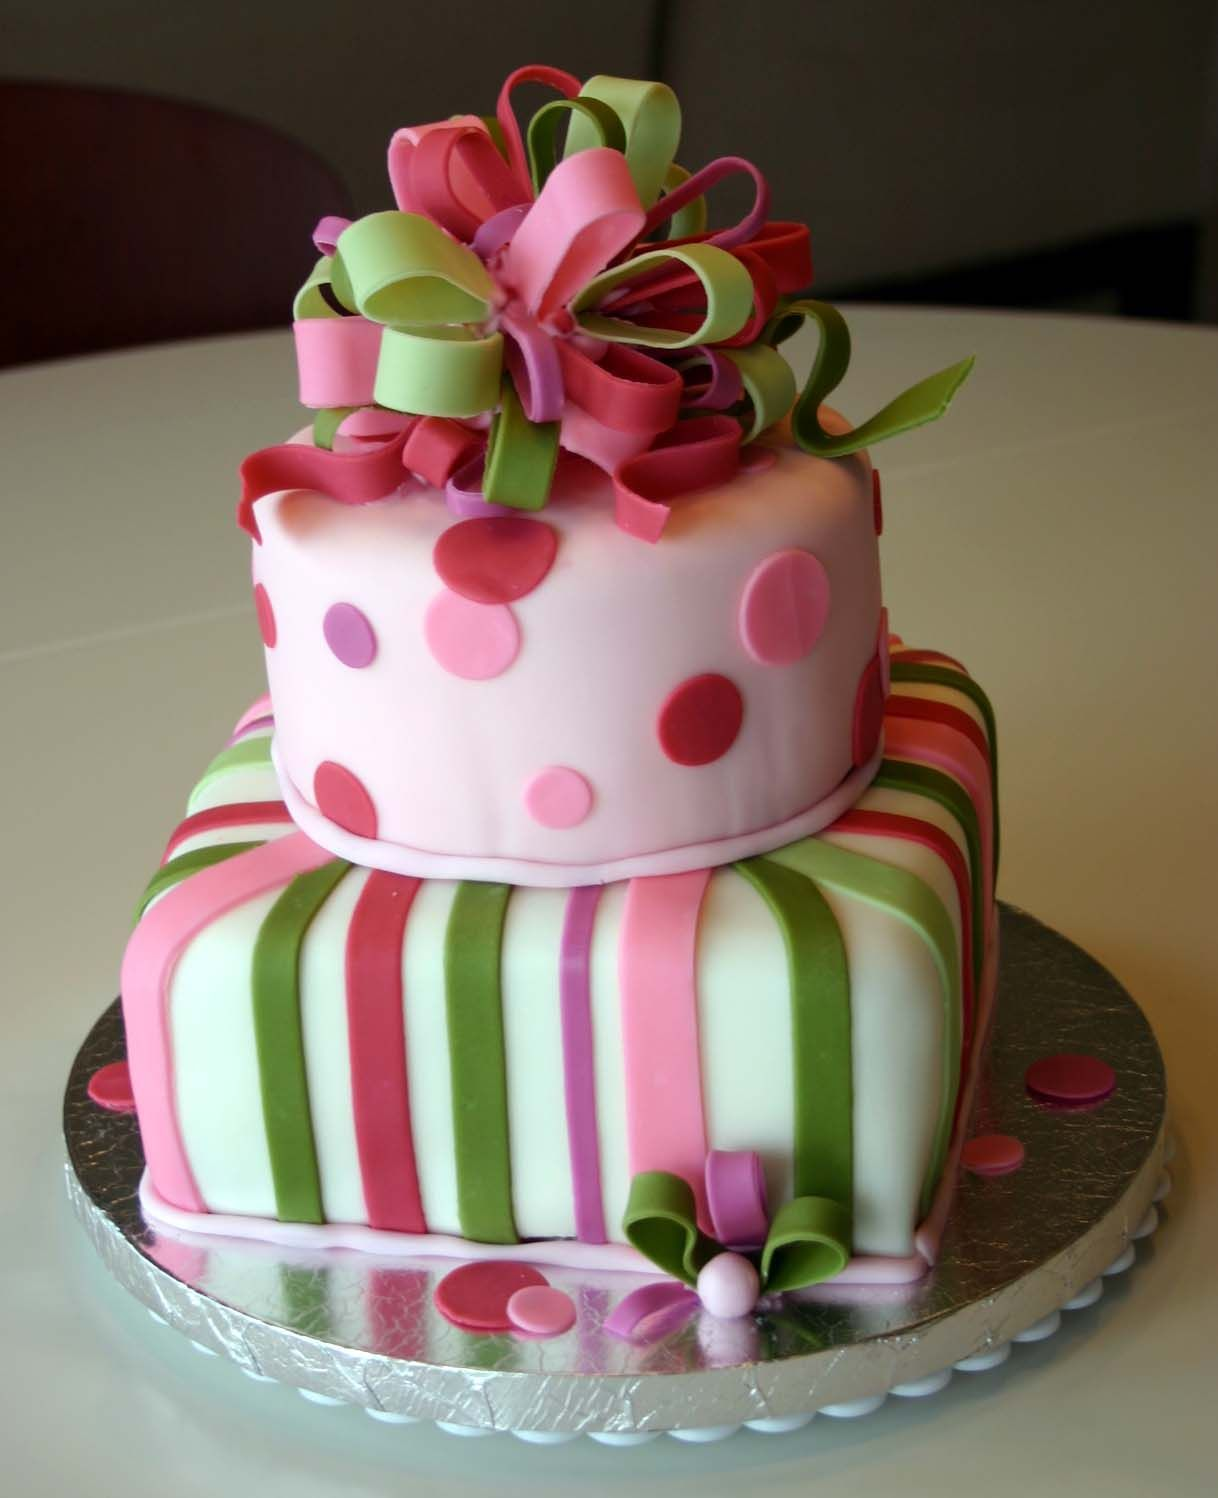 Birthday Cake And Presents Gorgeous Cakes Pinterest Cake